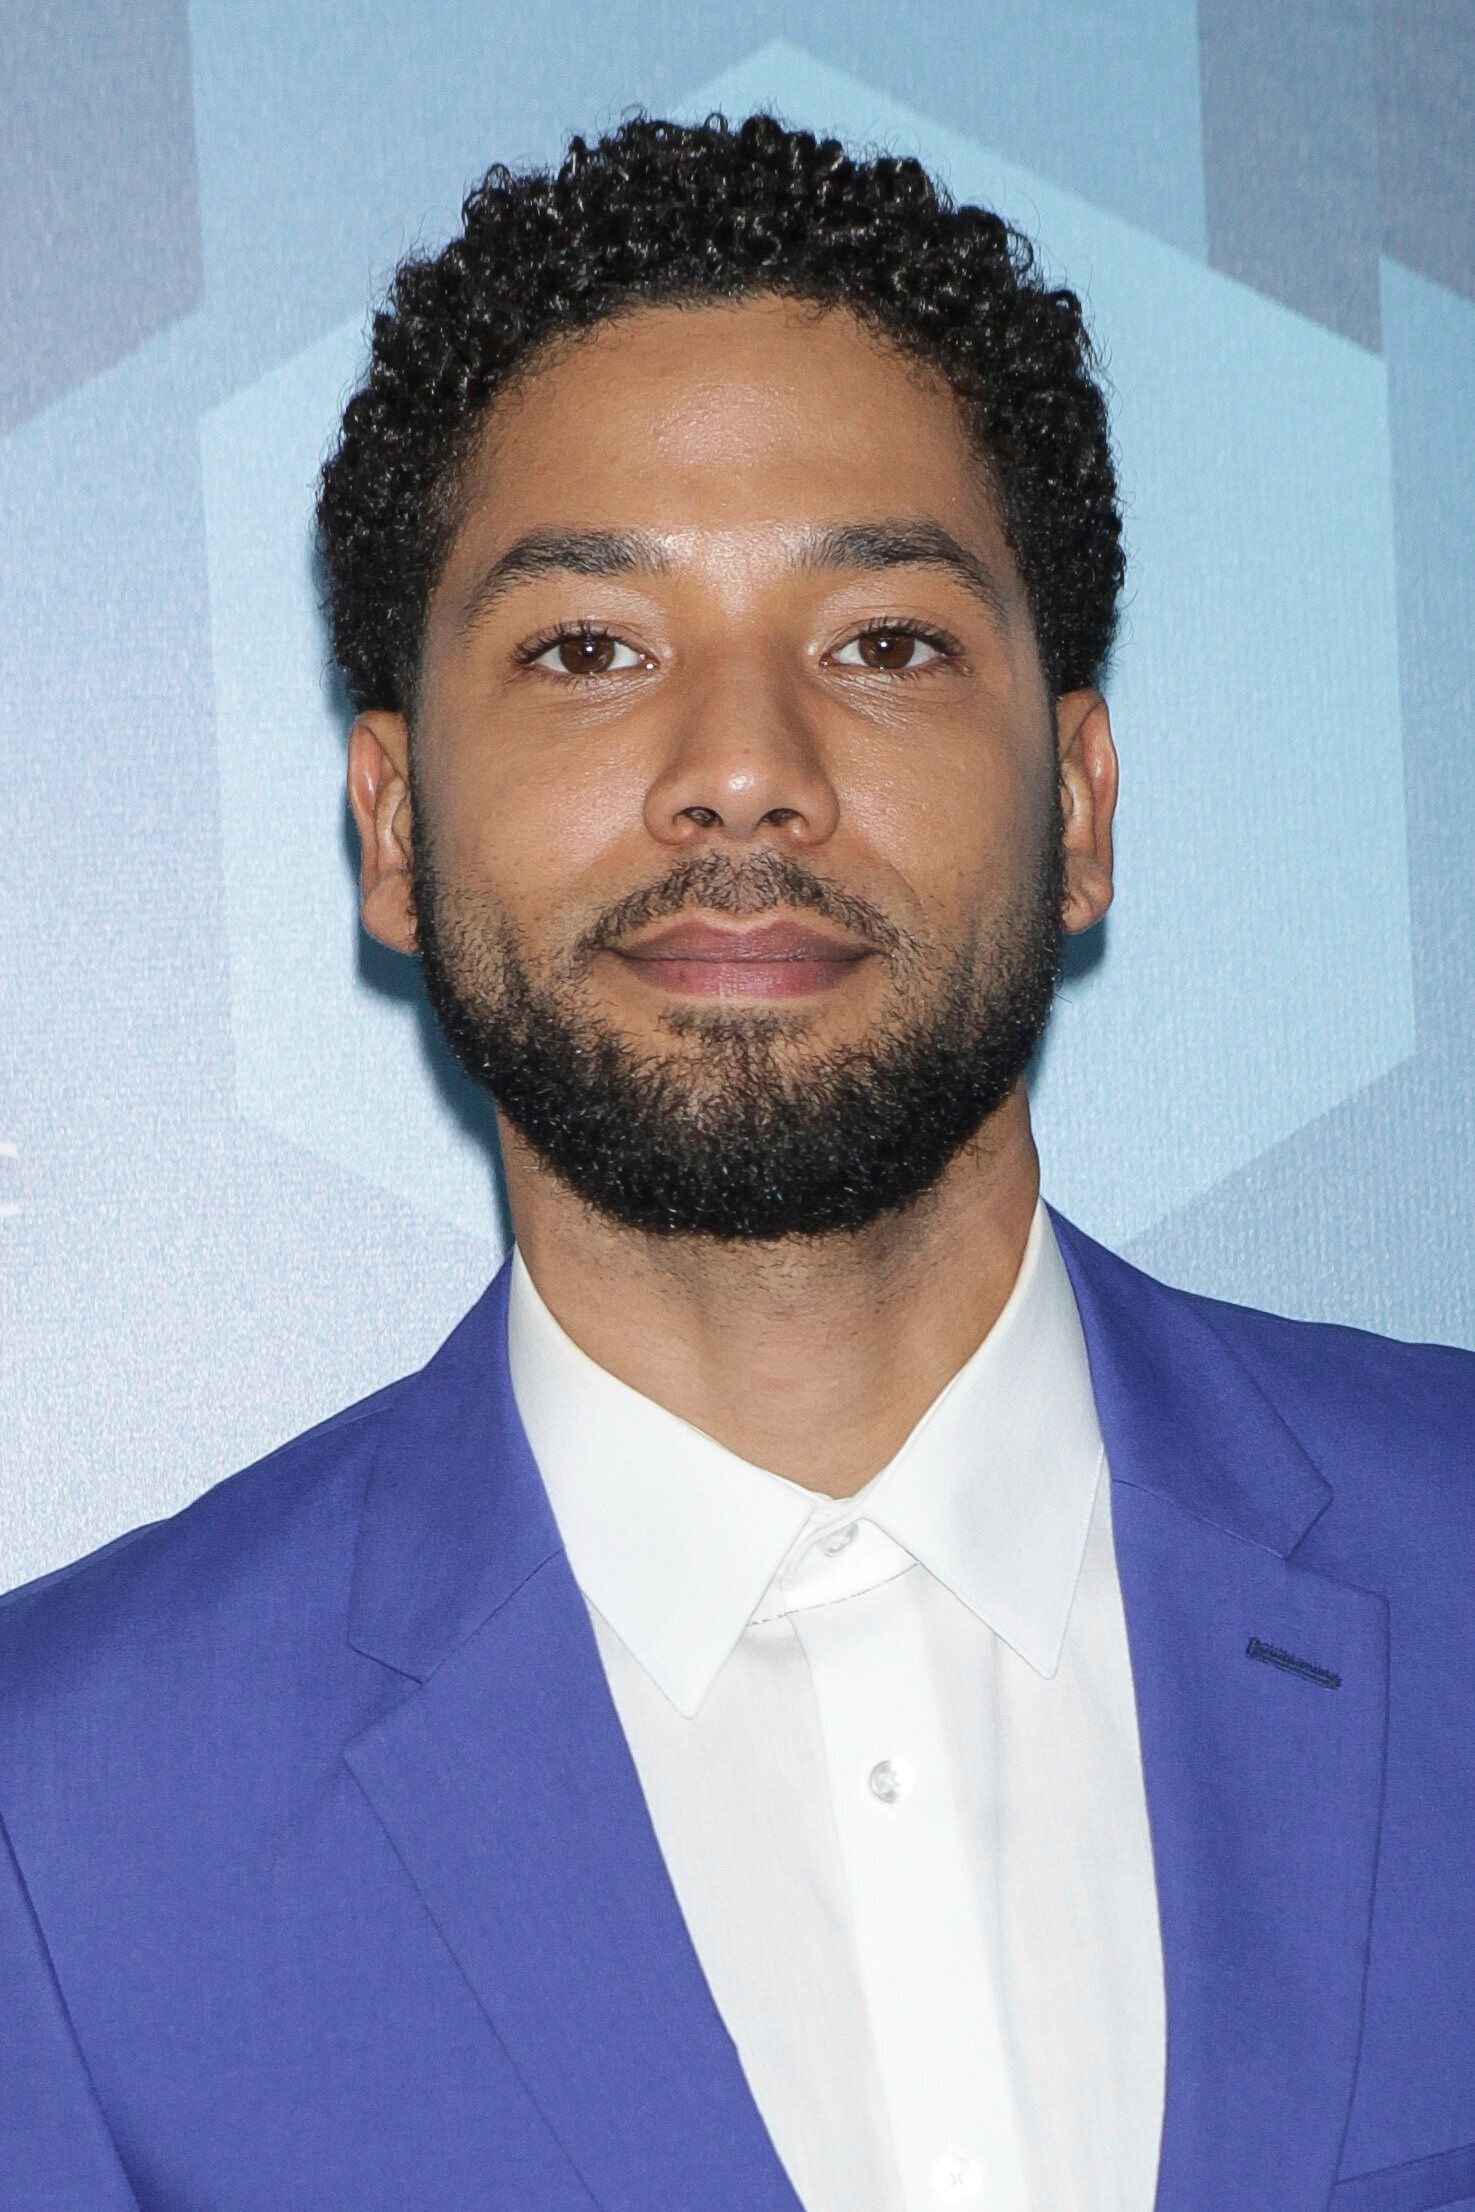 NEW YORK CITY - MAY 16: Jussie Smollett arrives at the FOX 2016 Programming Presentation red carpet arrivals at the Wollman Rink in Central Park on Monday, May 16, 2016, in New York City. Diego Corredor / MediaPunch /IPX